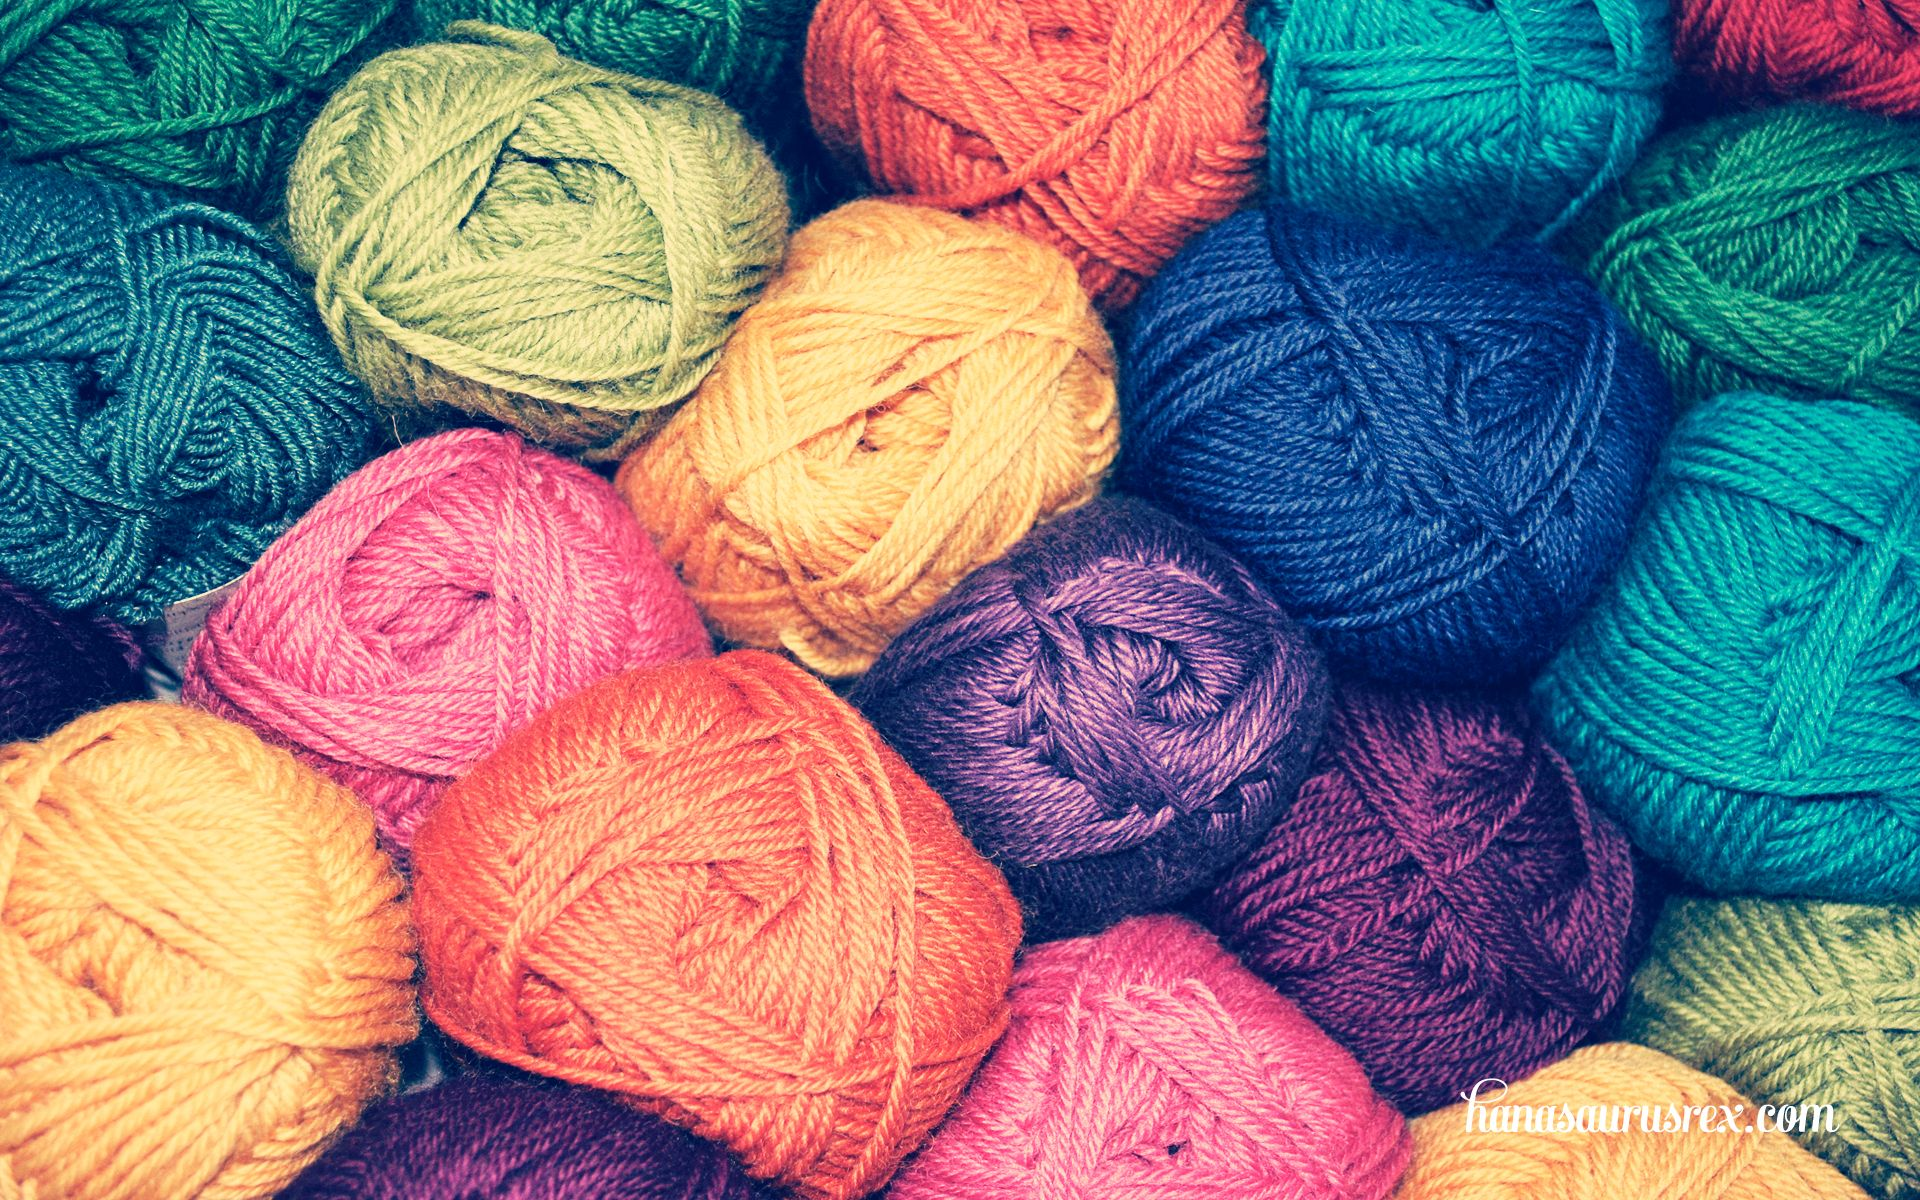 Crochet+Yarn Crochet Fridays - Crocheters in Central CT (Plainville ...